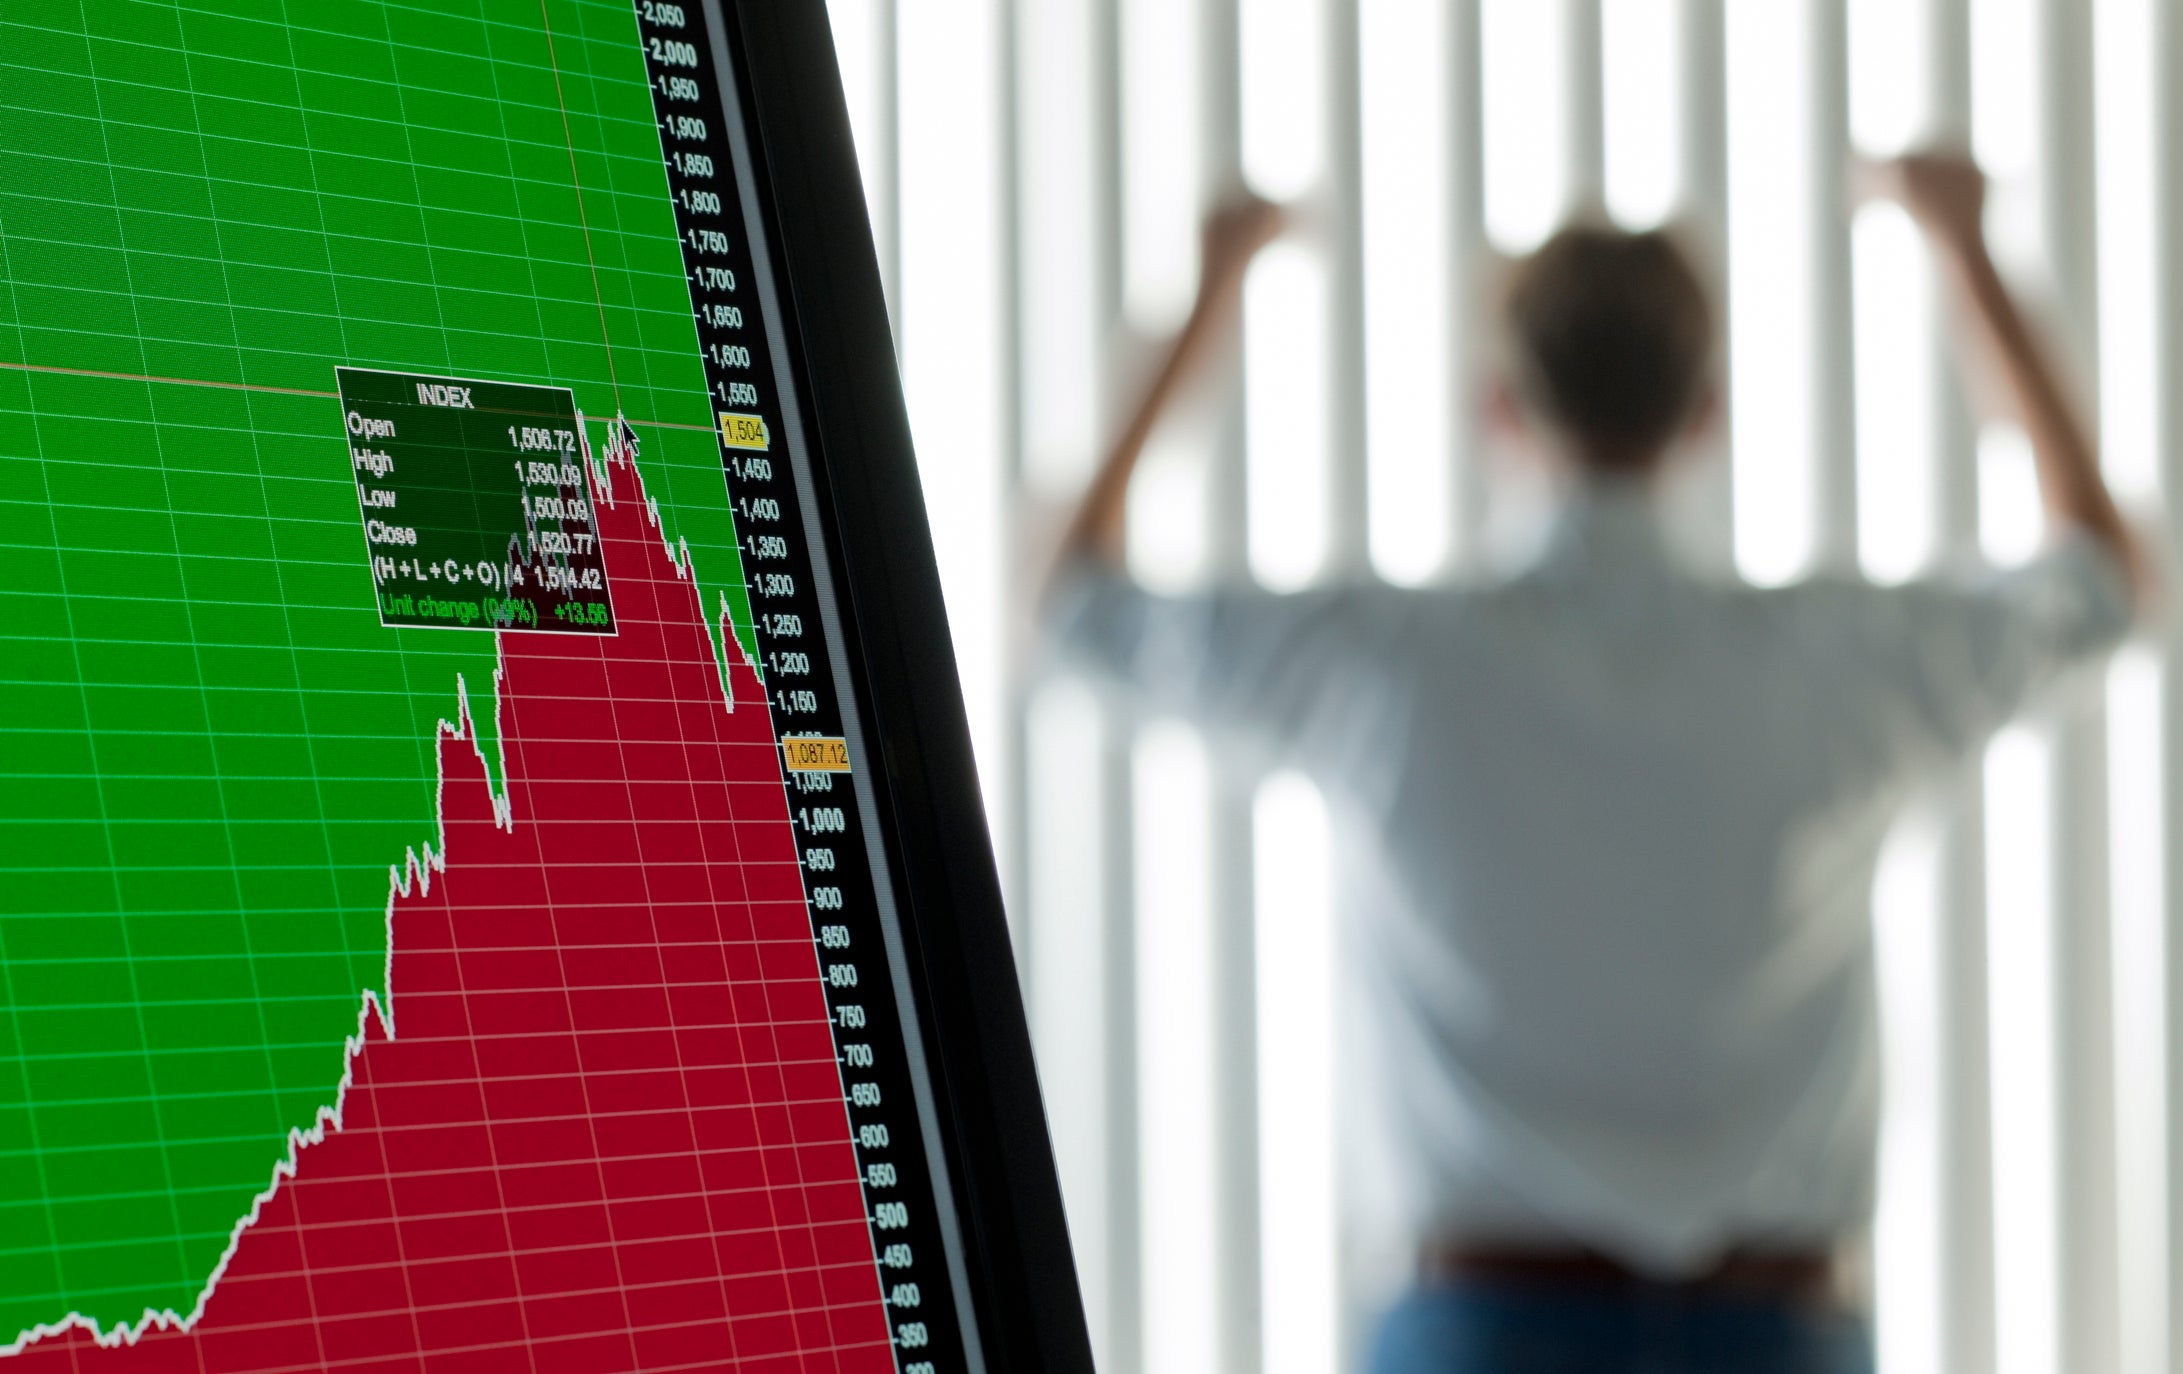 5 Stocks I Own and Will Add to if the Stock Market Crashes